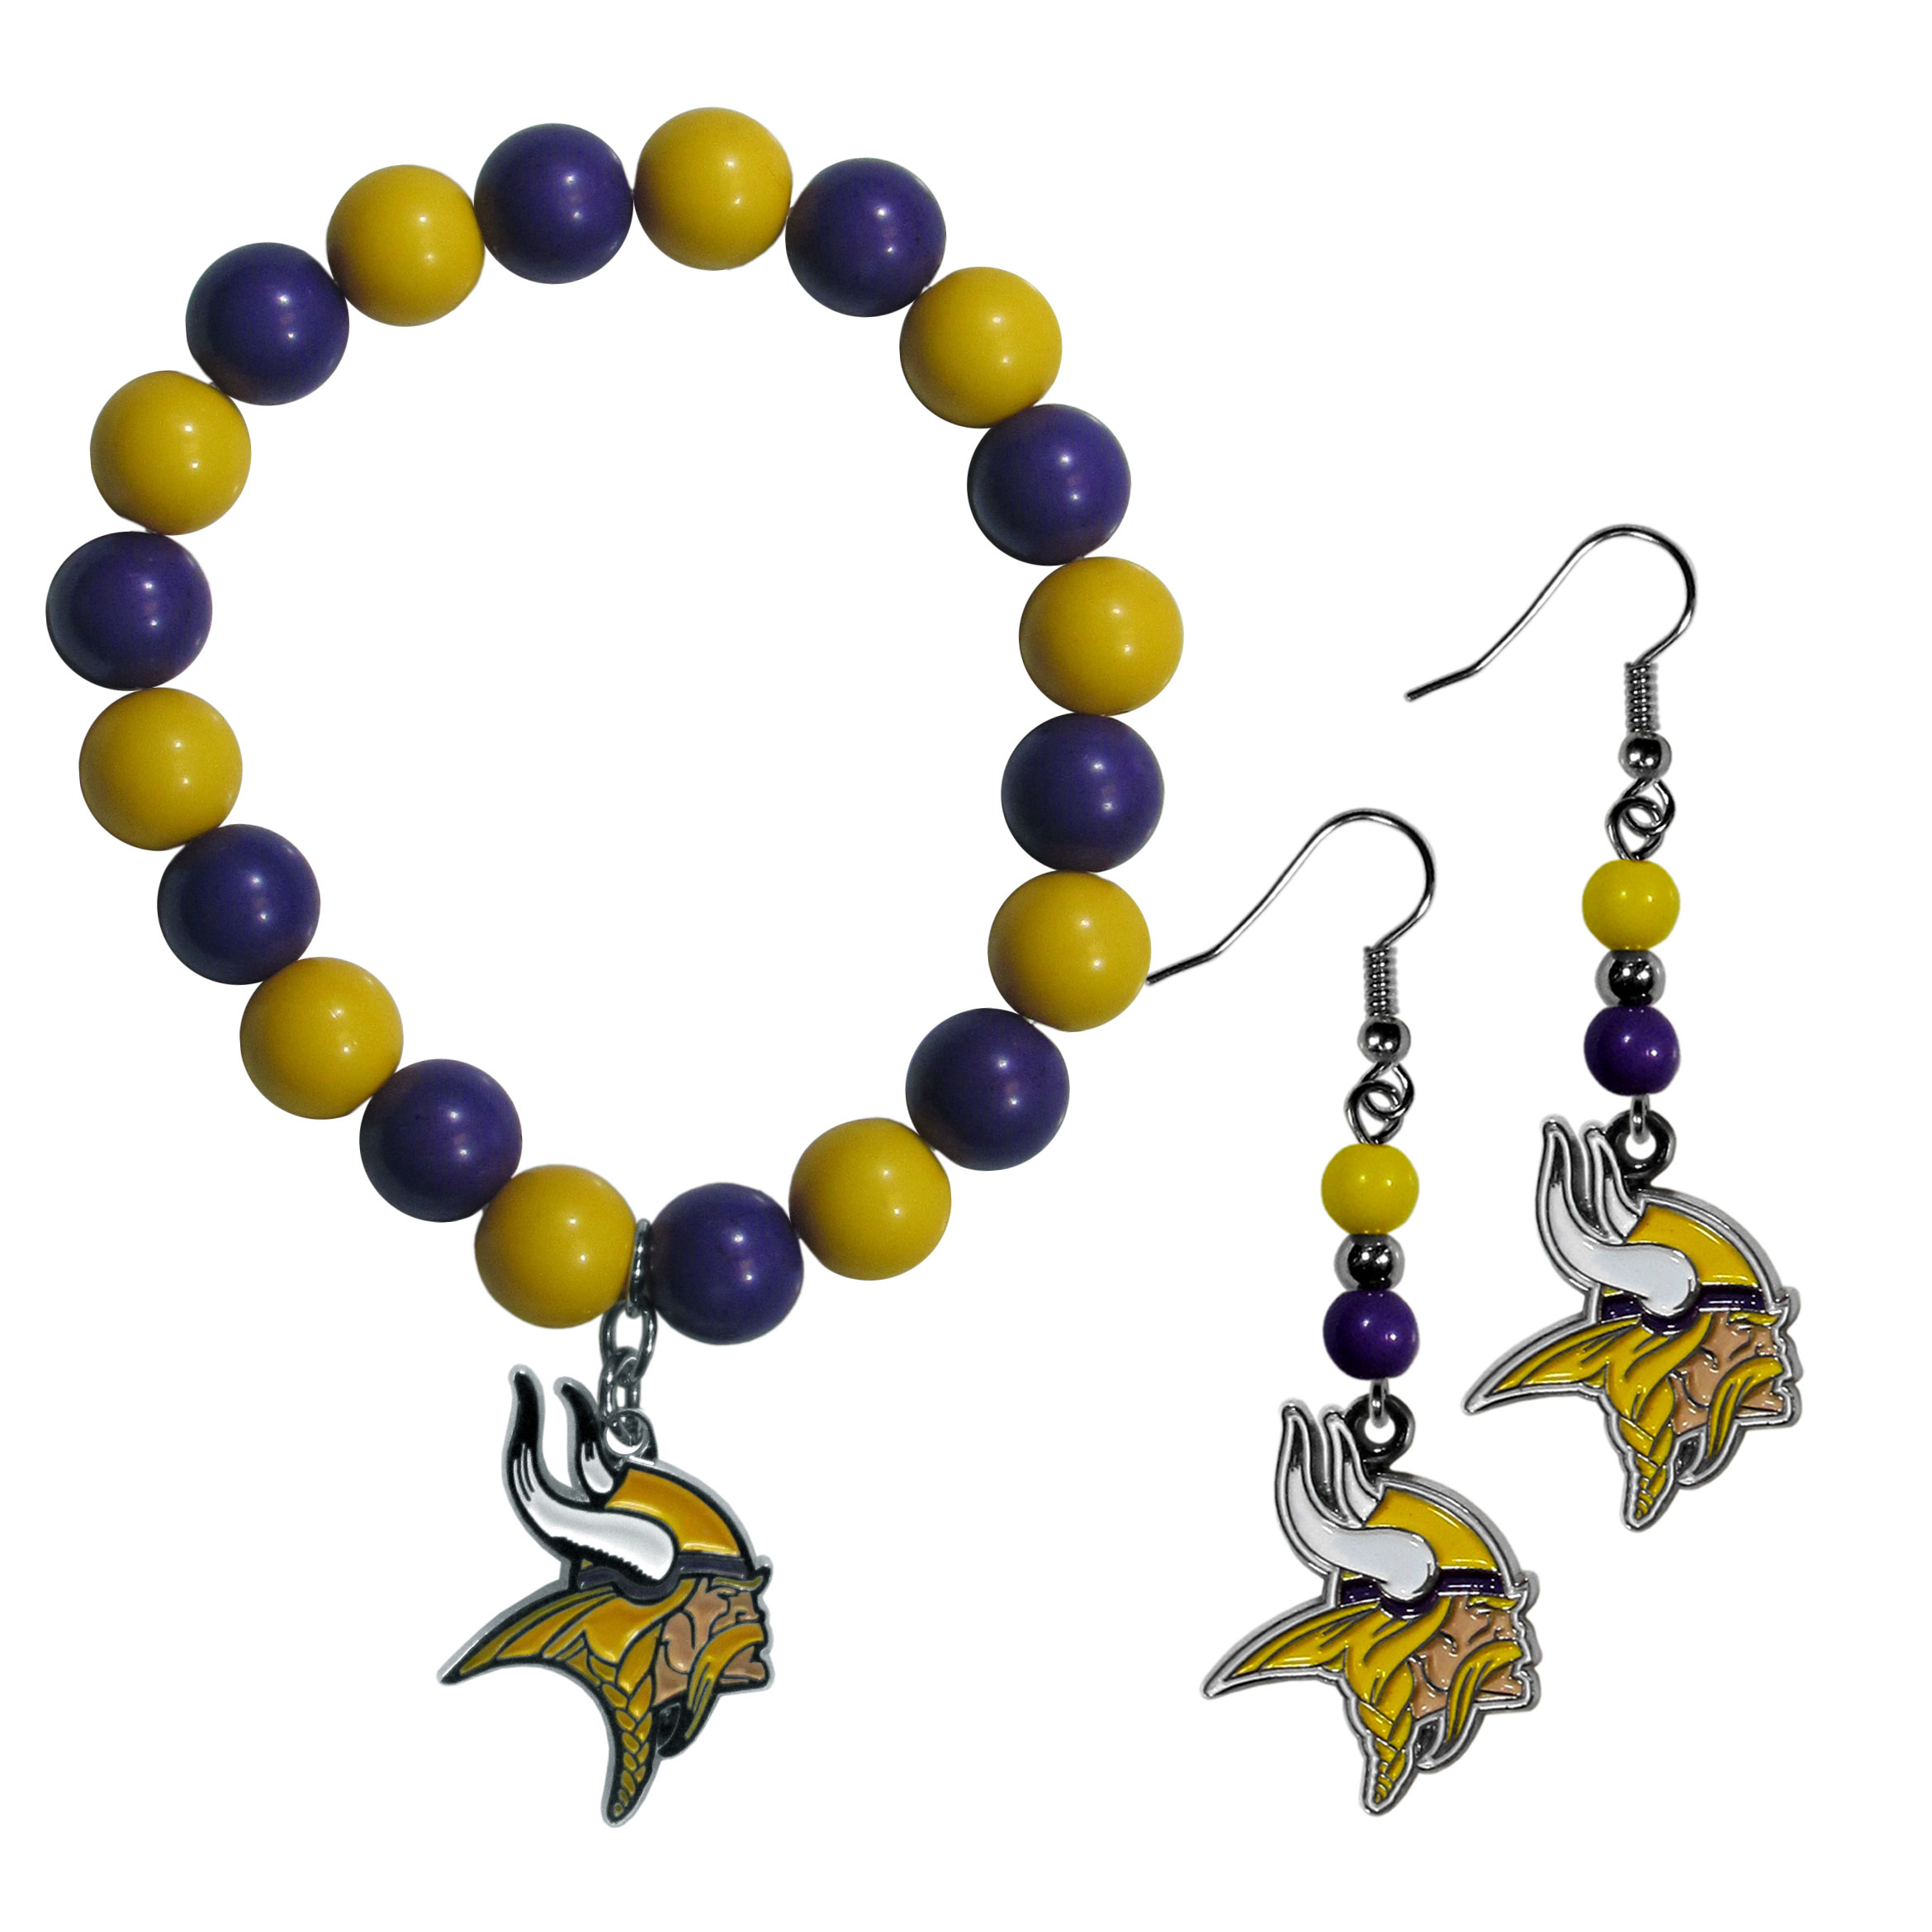 Minnesota Vikings Fan Bead Earrings and Bracelet Set - This fun and colorful Minnesota Vikings fan bead jewelry set is fun and casual with eye-catching beads in bright team colors. The fashionable dangle earrings feature a team colored beads that drop down to a carved and enameled charm. The stretch bracelet has larger matching beads that make a striking statement and have a matching team charm. These sassy yet sporty jewelry pieces make a perfect gift for any female fan. Spice up your game-day outfit with these fun colorful earrings and bracelet that are also cute enough for any day.